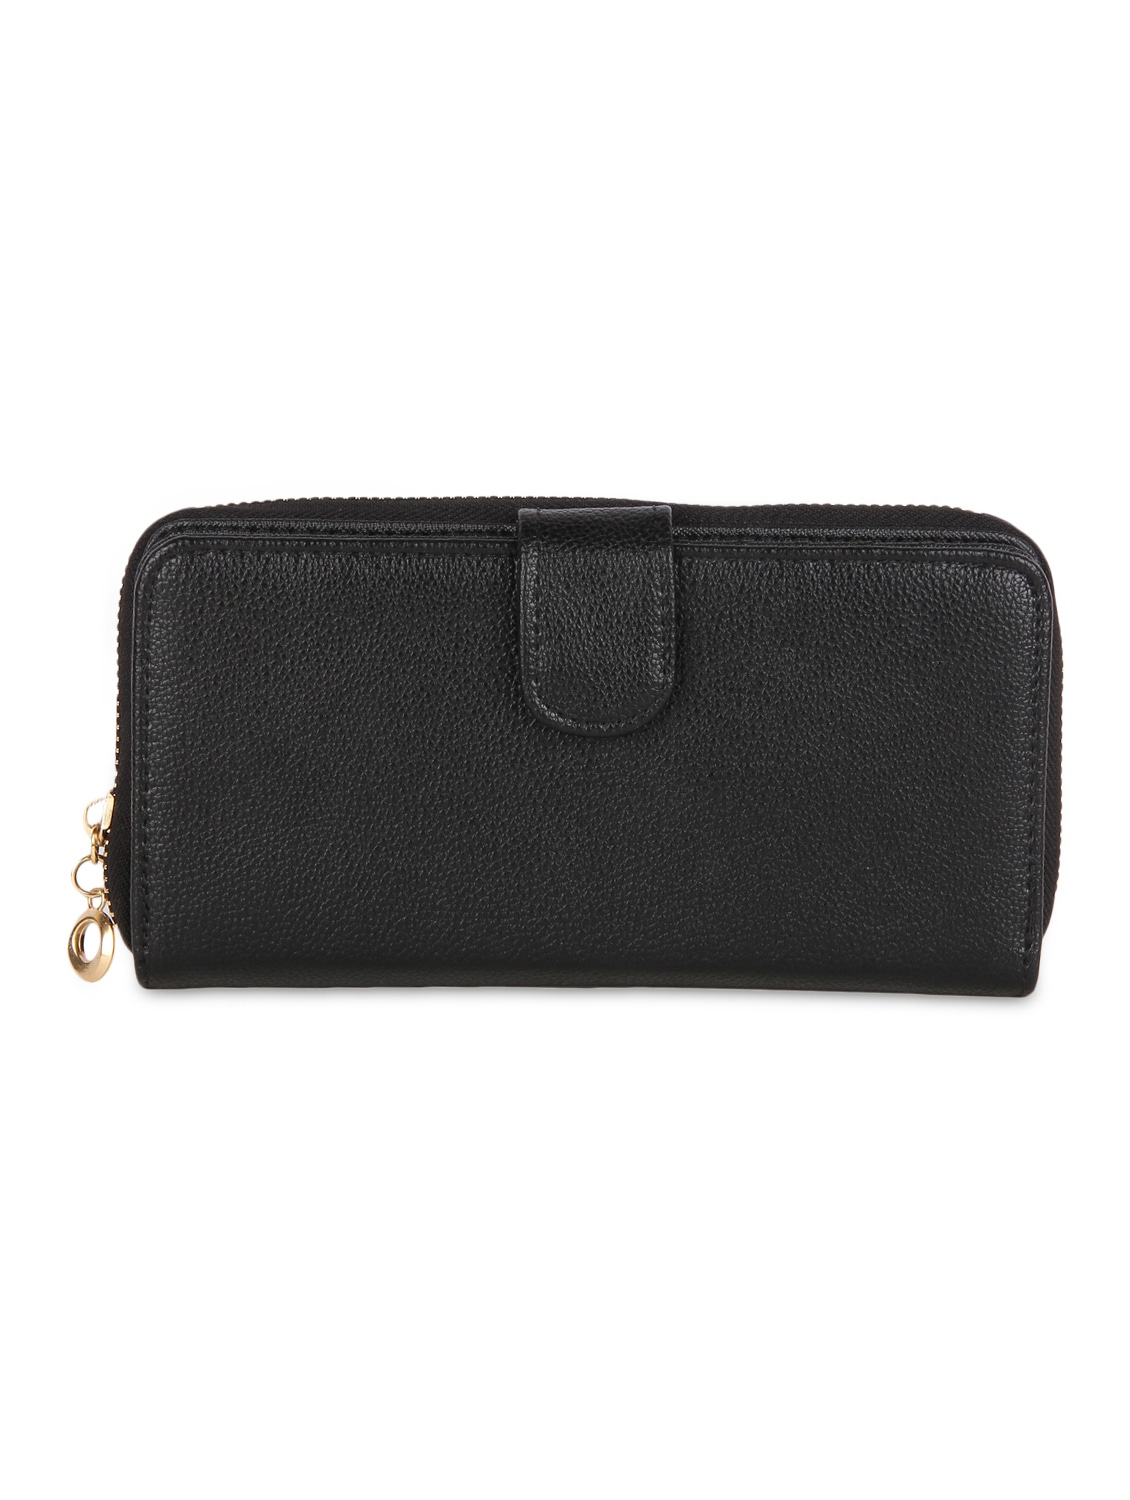 Solid Black Leatherette Textured Clutch - By